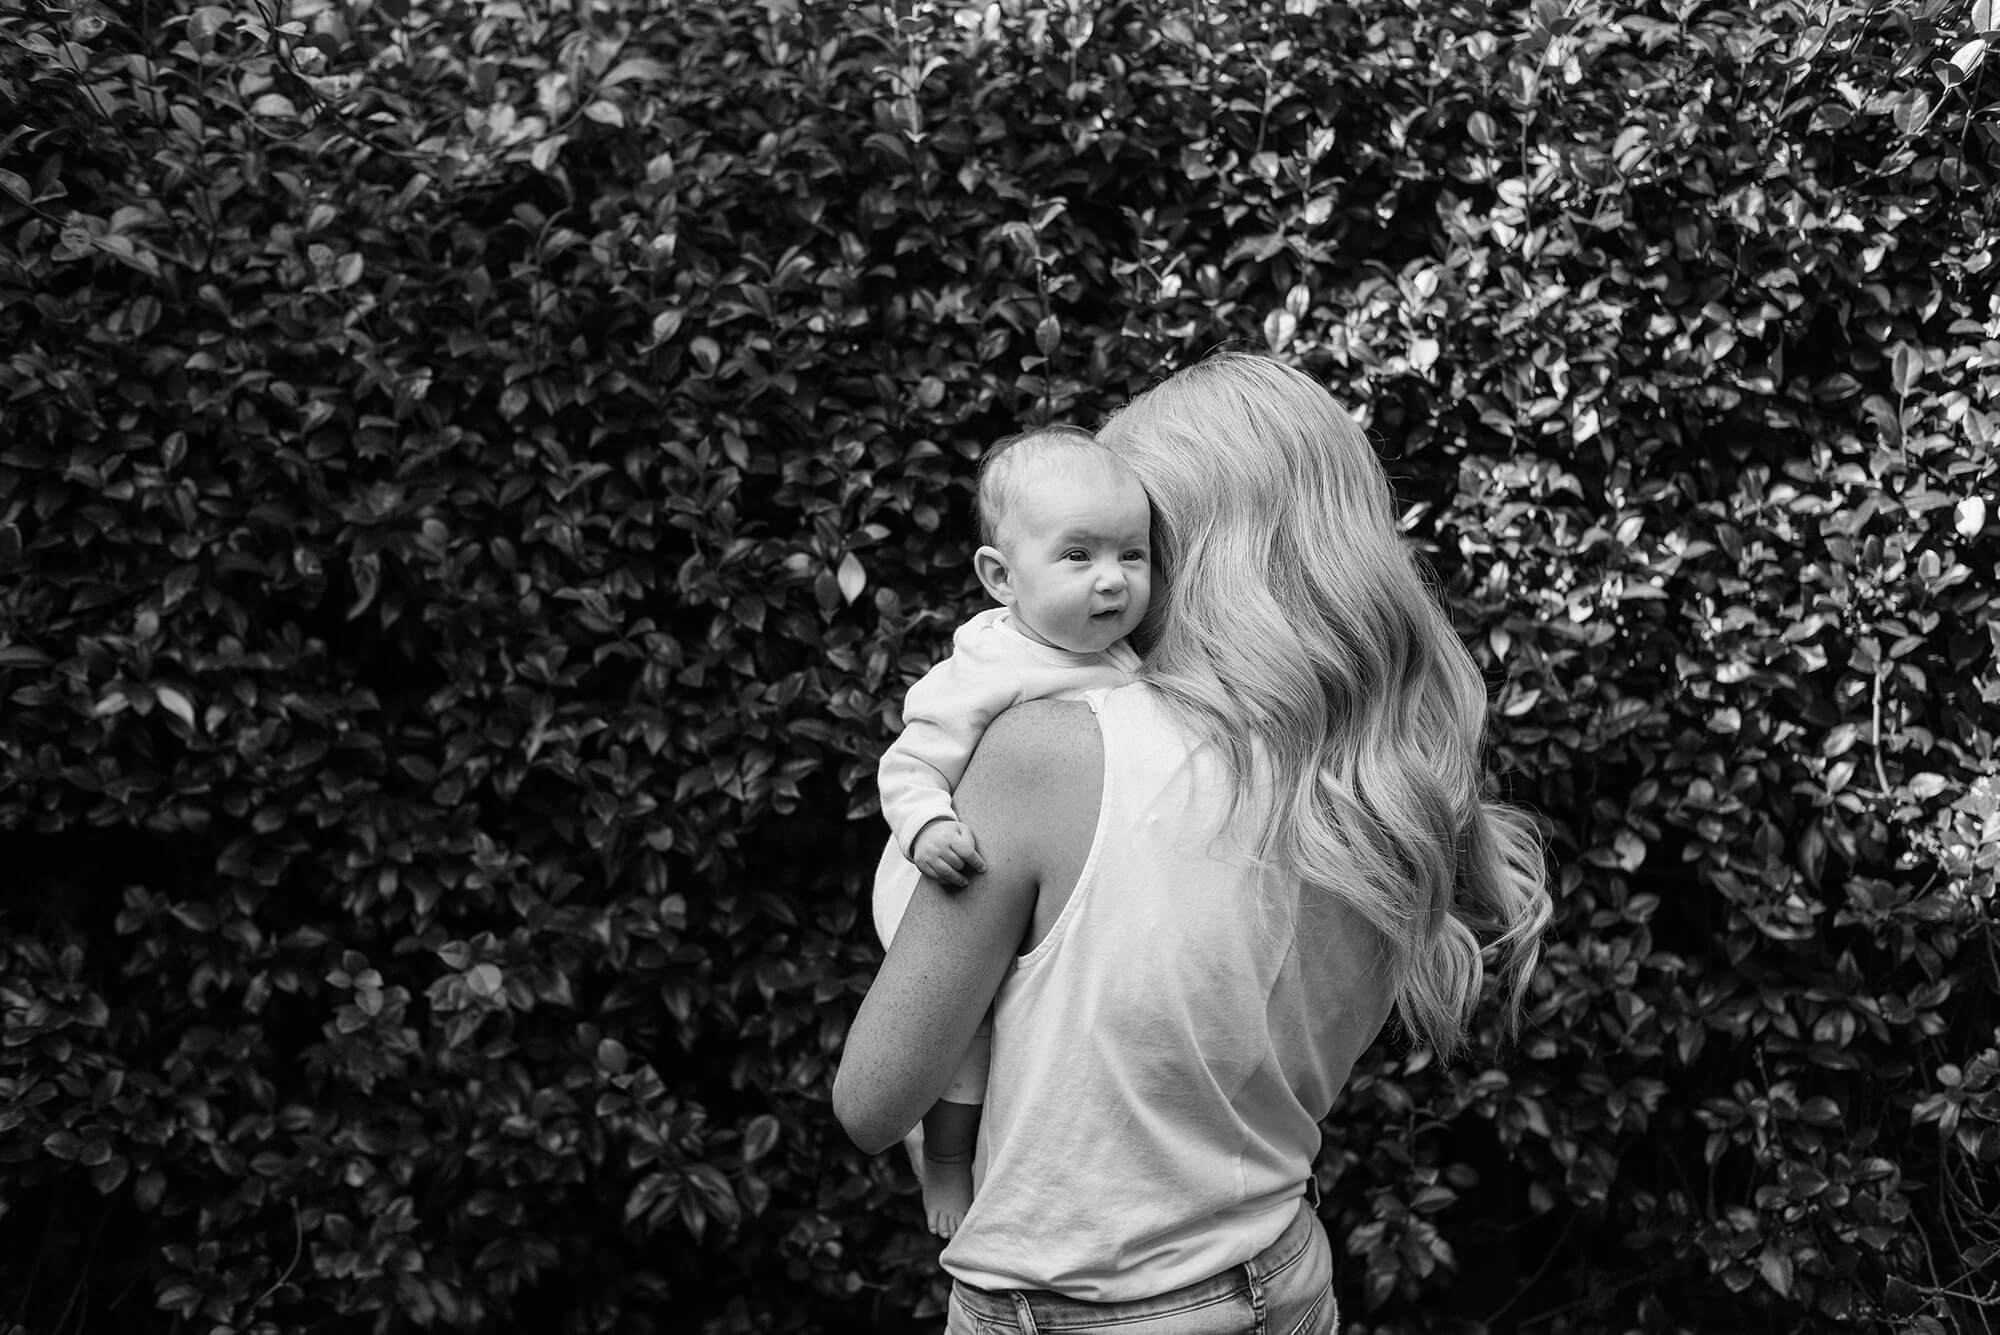 Mother with long blonde hair holding baby girl who is looking out over her shoulder